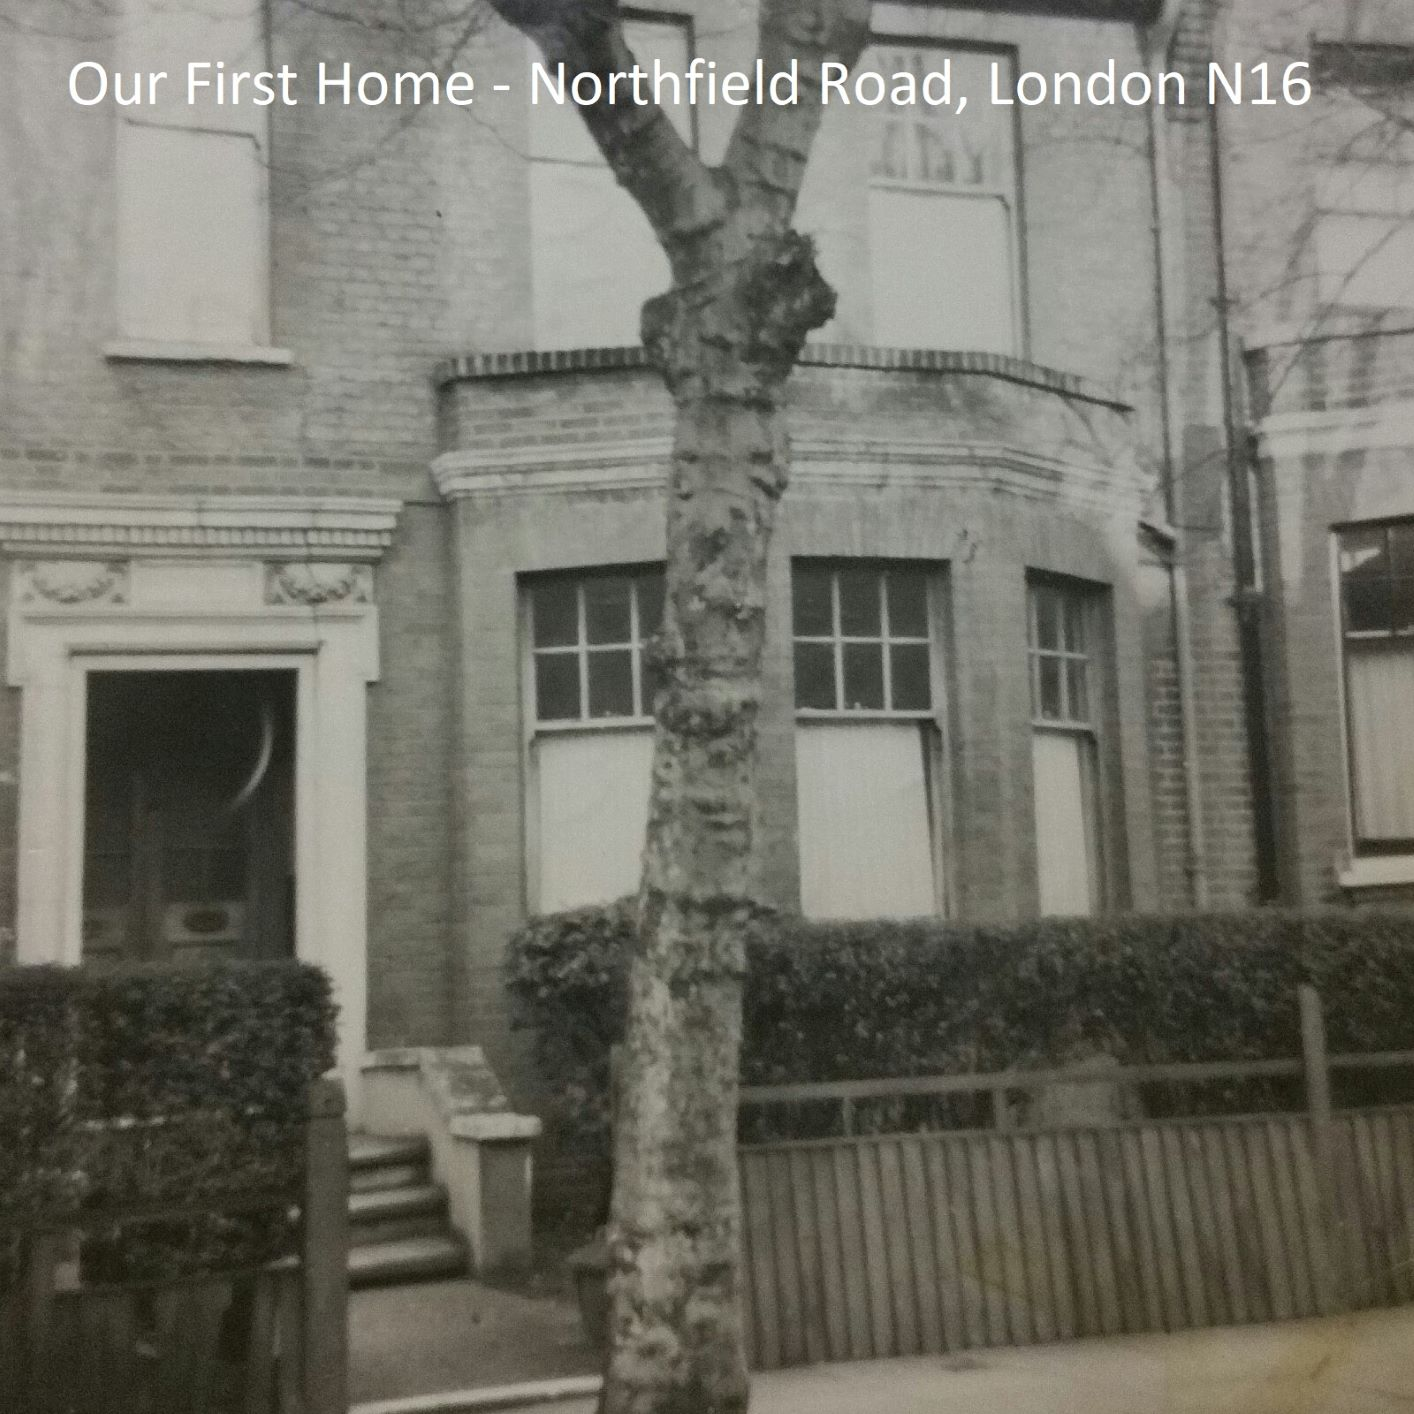 55 Northfield Road - Our founding location in 1953